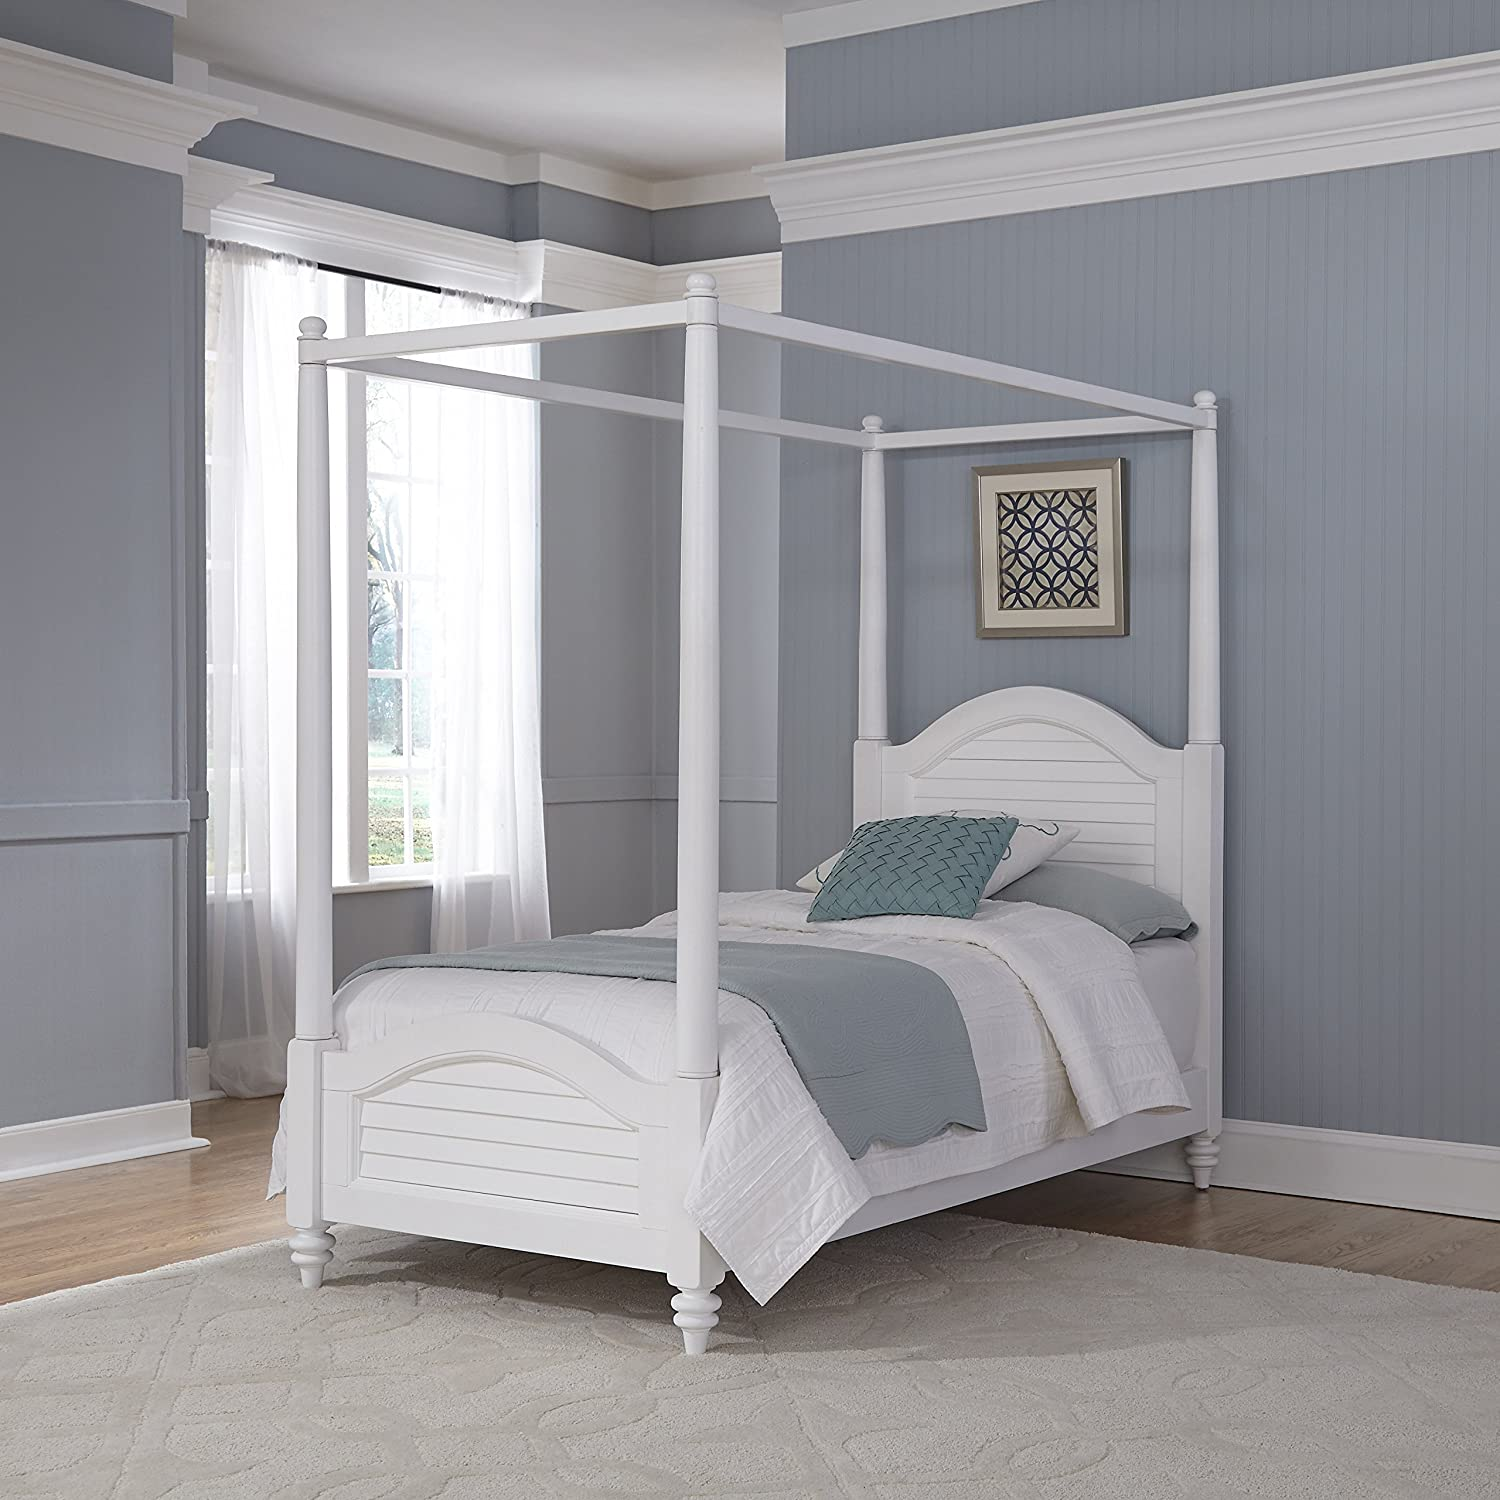 Amazon.com Home Styles Model 5542-510 Bermuda Canopy Bed Queen Espresso Finish Kitchen u0026 Dining : twin canopy beds for girls - memphite.com